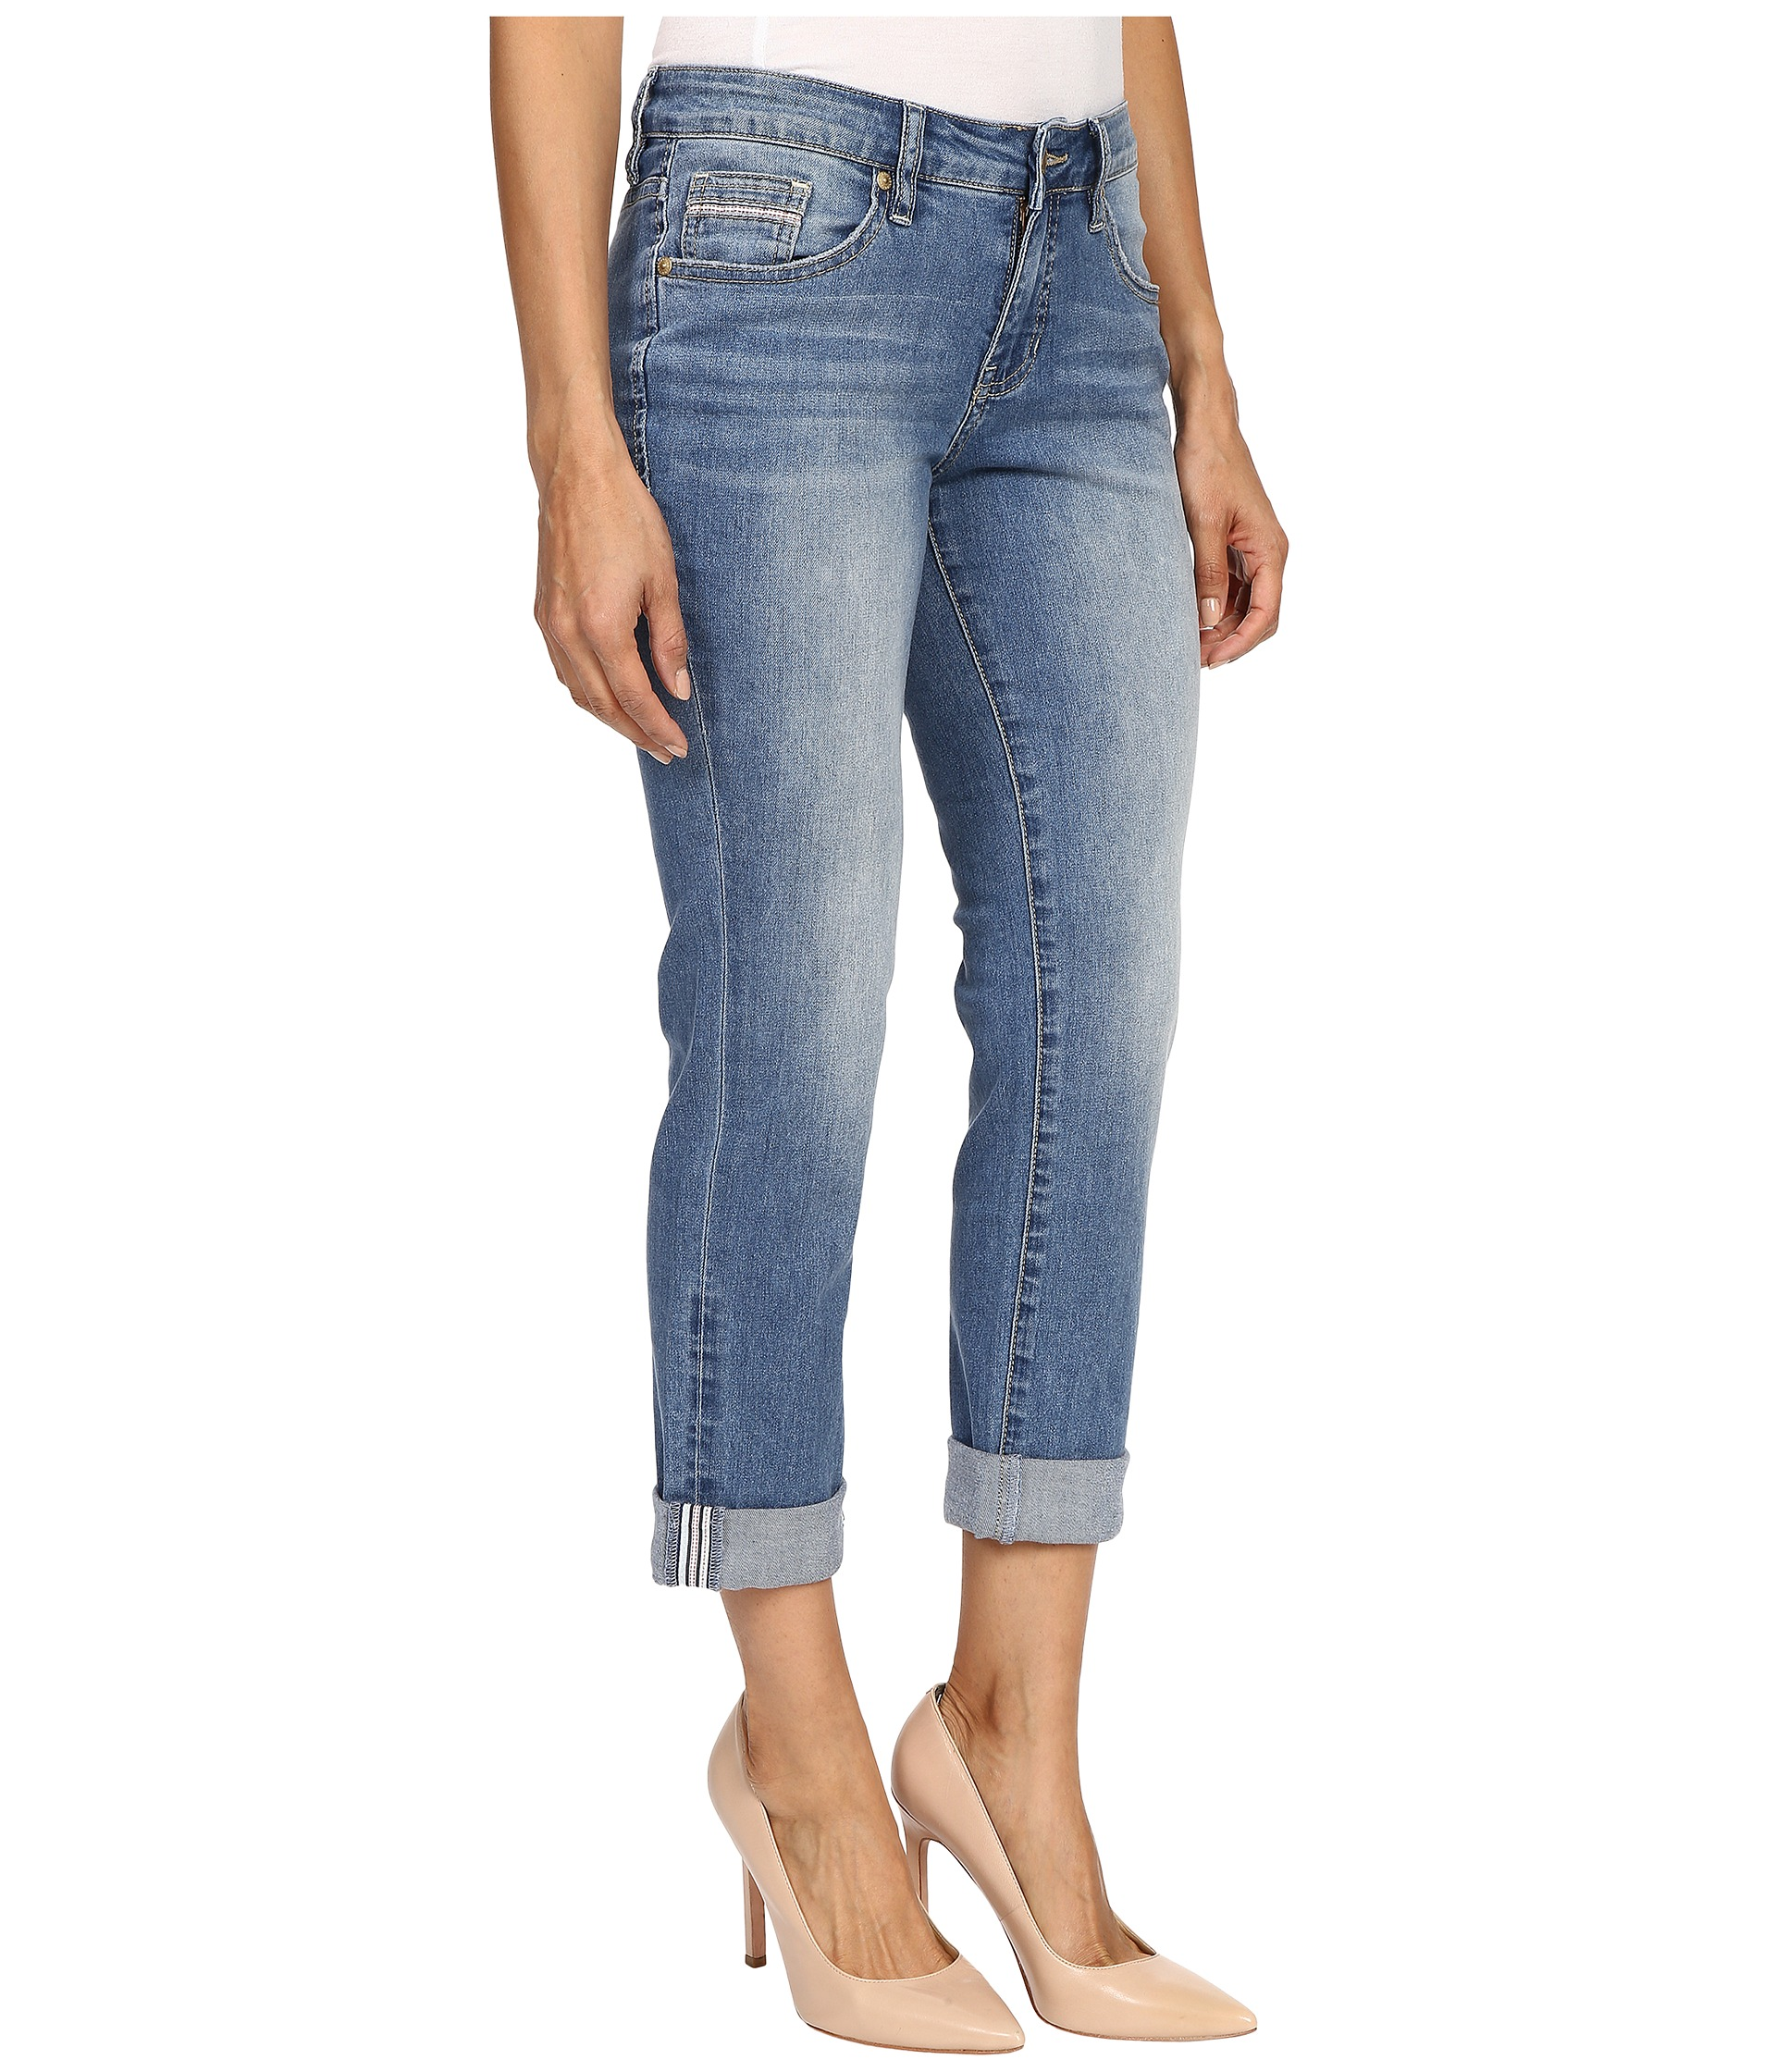 Jag Jeans Petite Petite Alex Boyfriend in Rock Water Blue - Zappos.com Free Shipping BOTH Ways